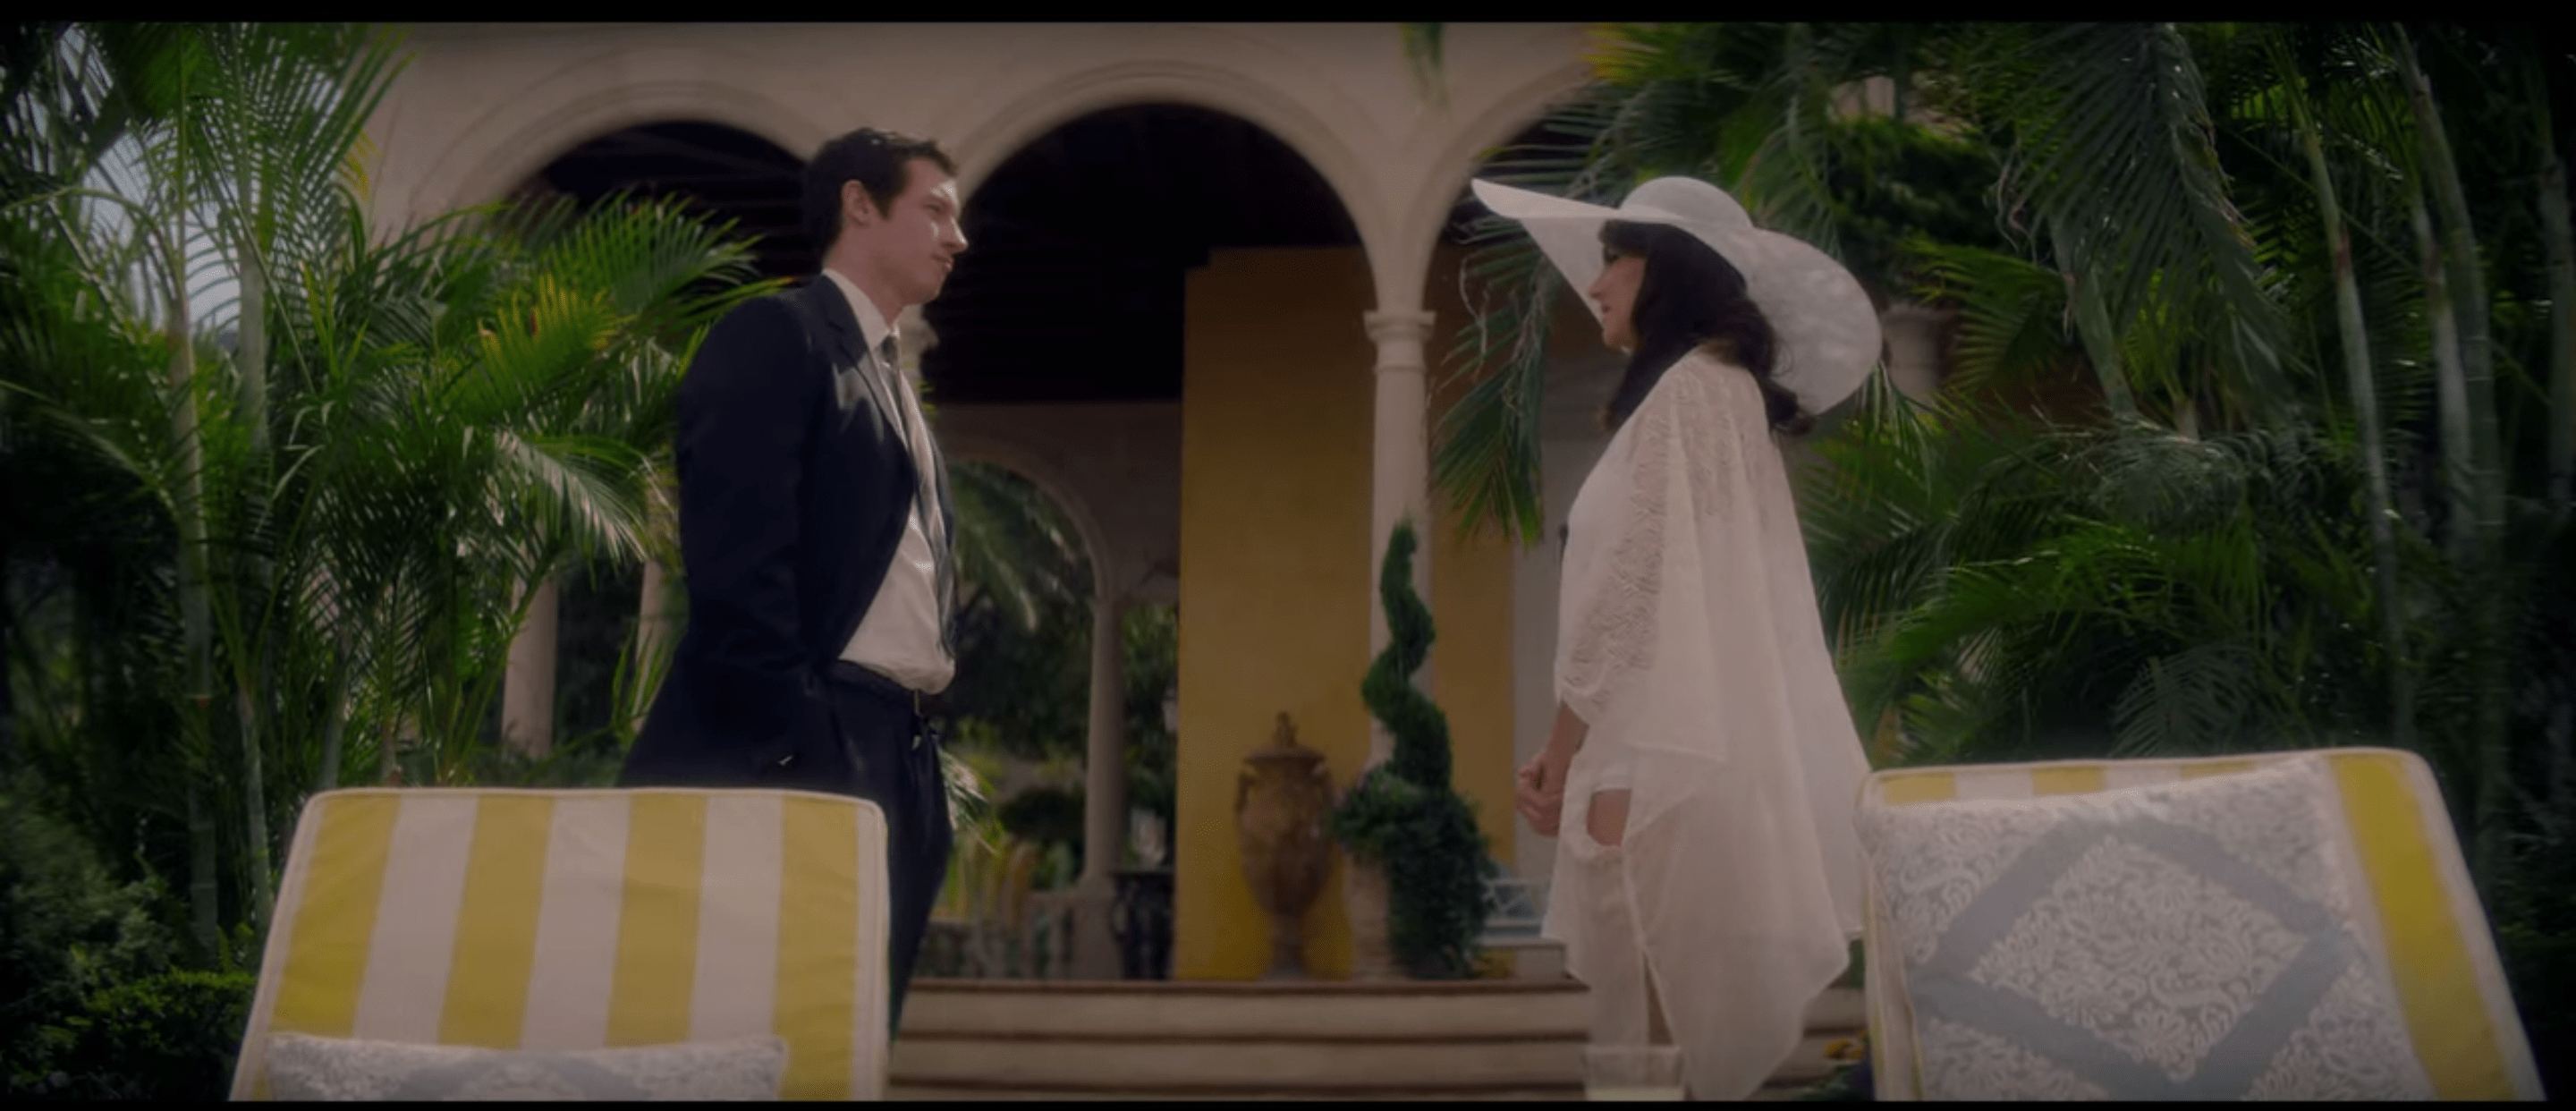 Anthony and Jennifer meeting for the first time. She is wearing a white floaty bathing suit cover up and huge white sun hat. He is dressed in a suit and tie. There are yellow and white striped lounge chairs in front of them and large fronded plants behind them.